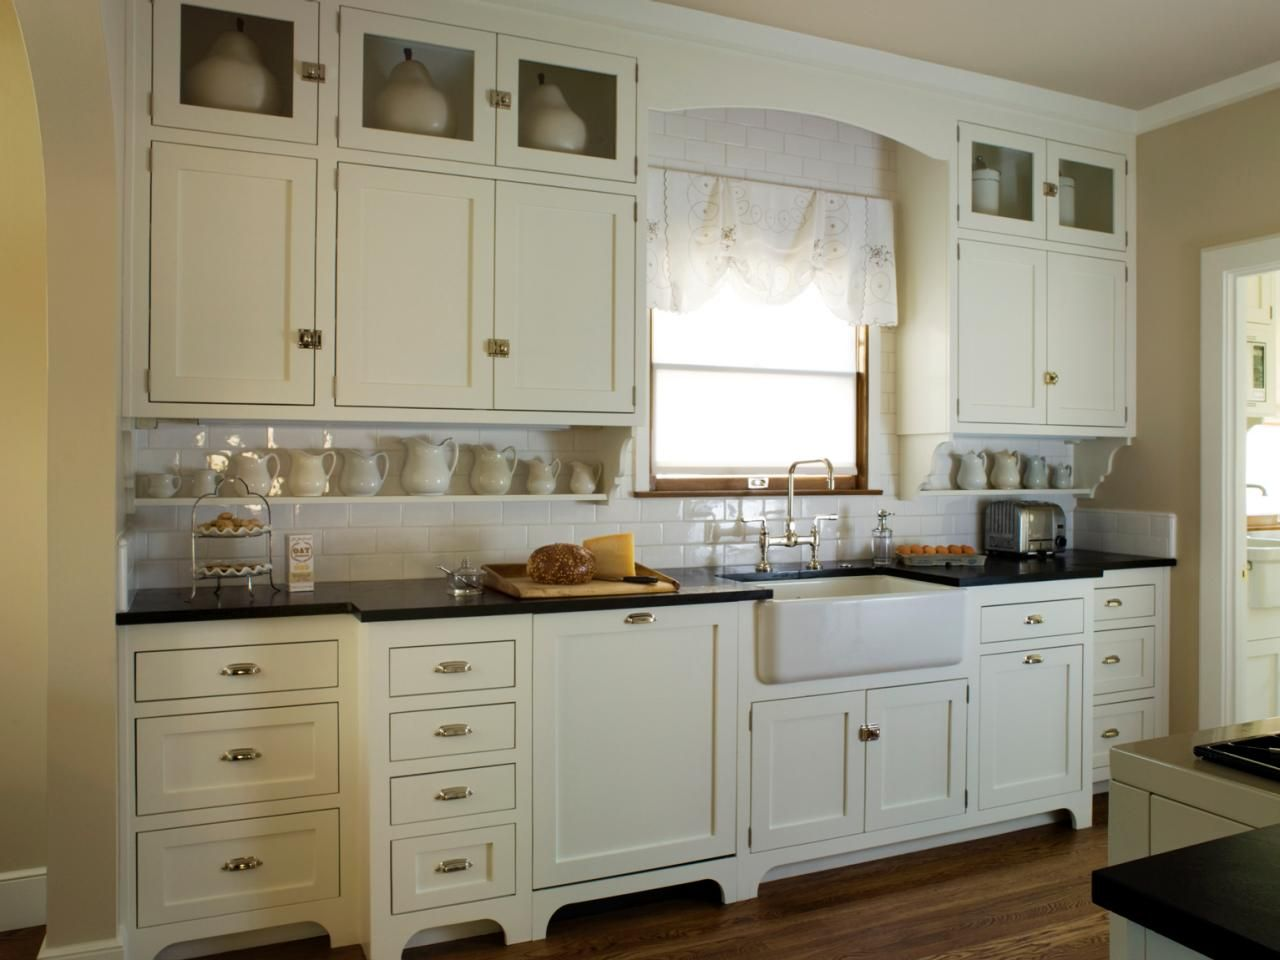 White Country Kitchen Images 27 antique white kitchen cabinets [amazing photos gallery | white